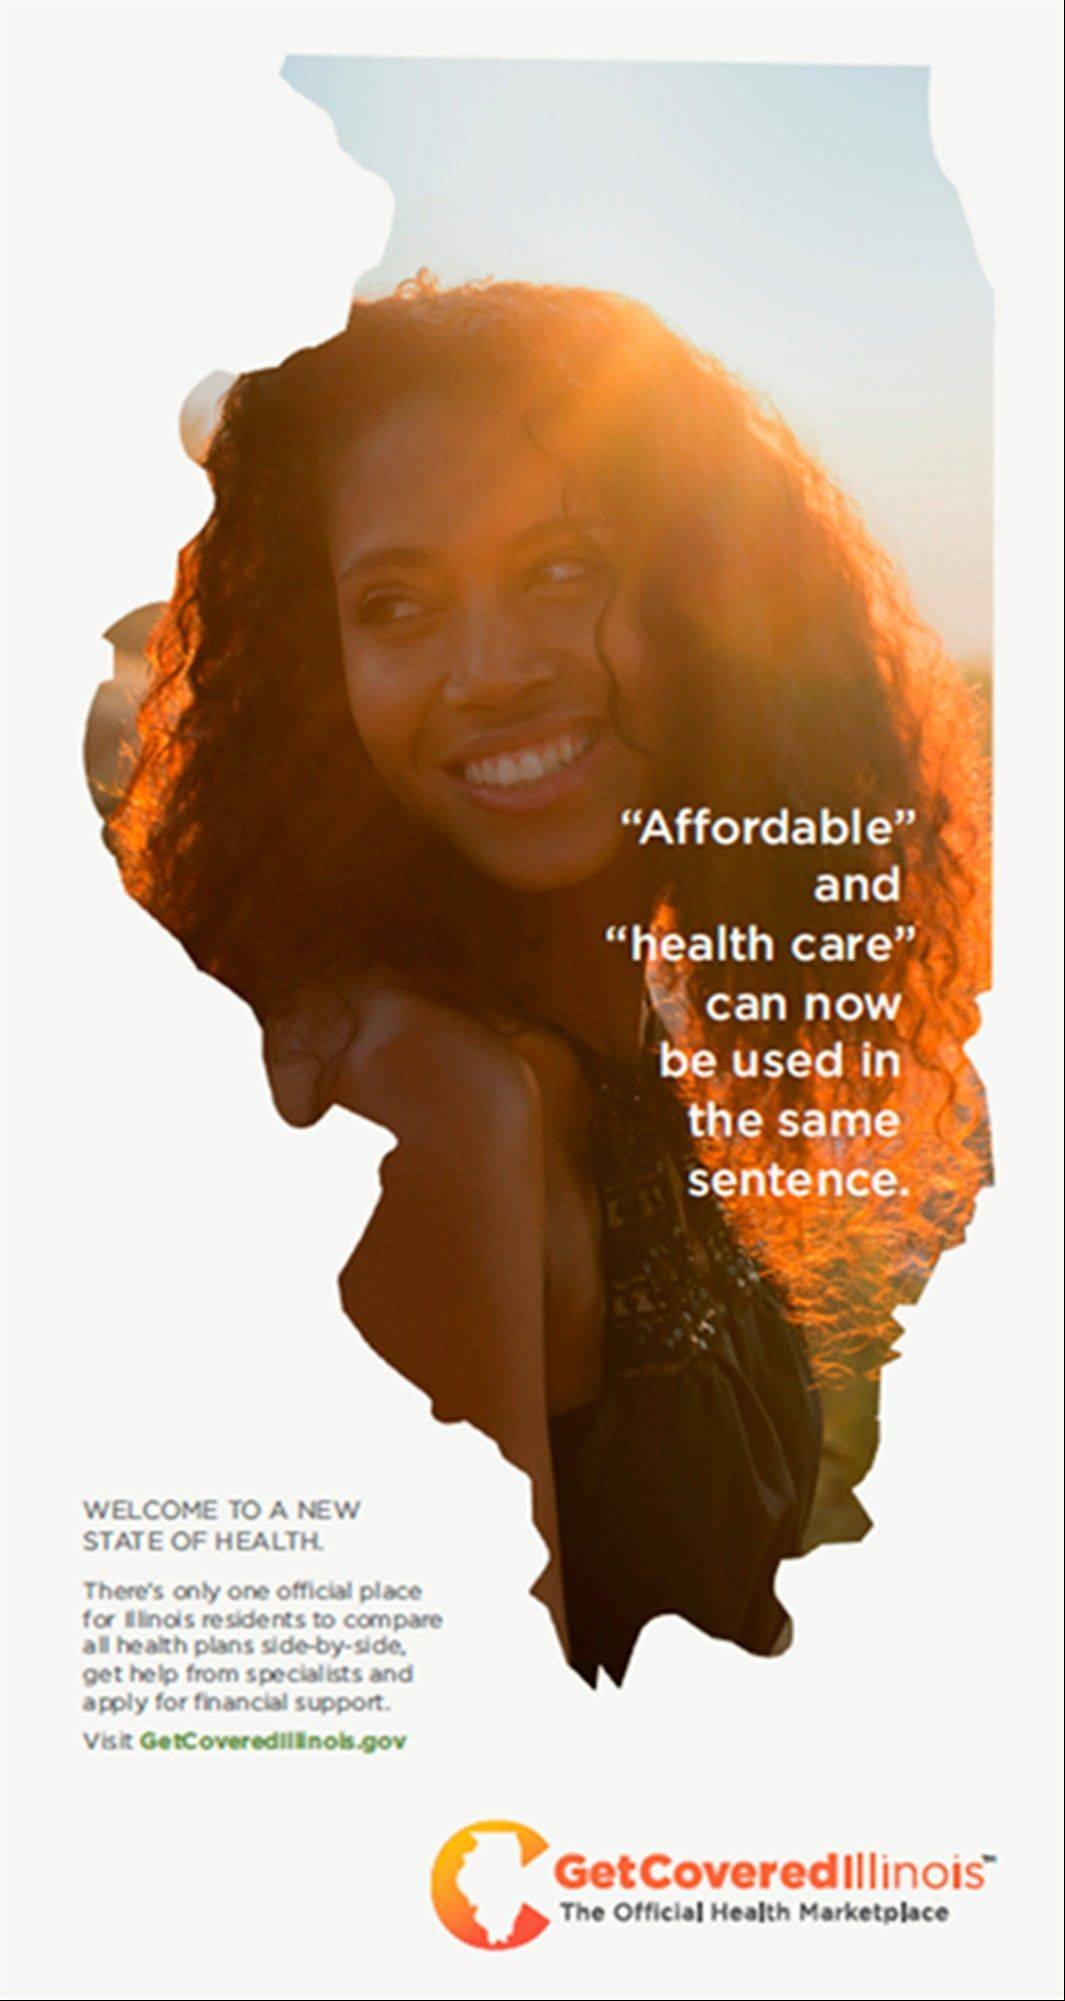 This undated image provided by the Illinois Health Insurance Marketplace shows one of three print ads that Illinois will launch Tuesday in an advertising campaign to inform Illinois residents about the health insurance marketplace opening that day that will connect people with new benefits under President Barack Obama's health care law.